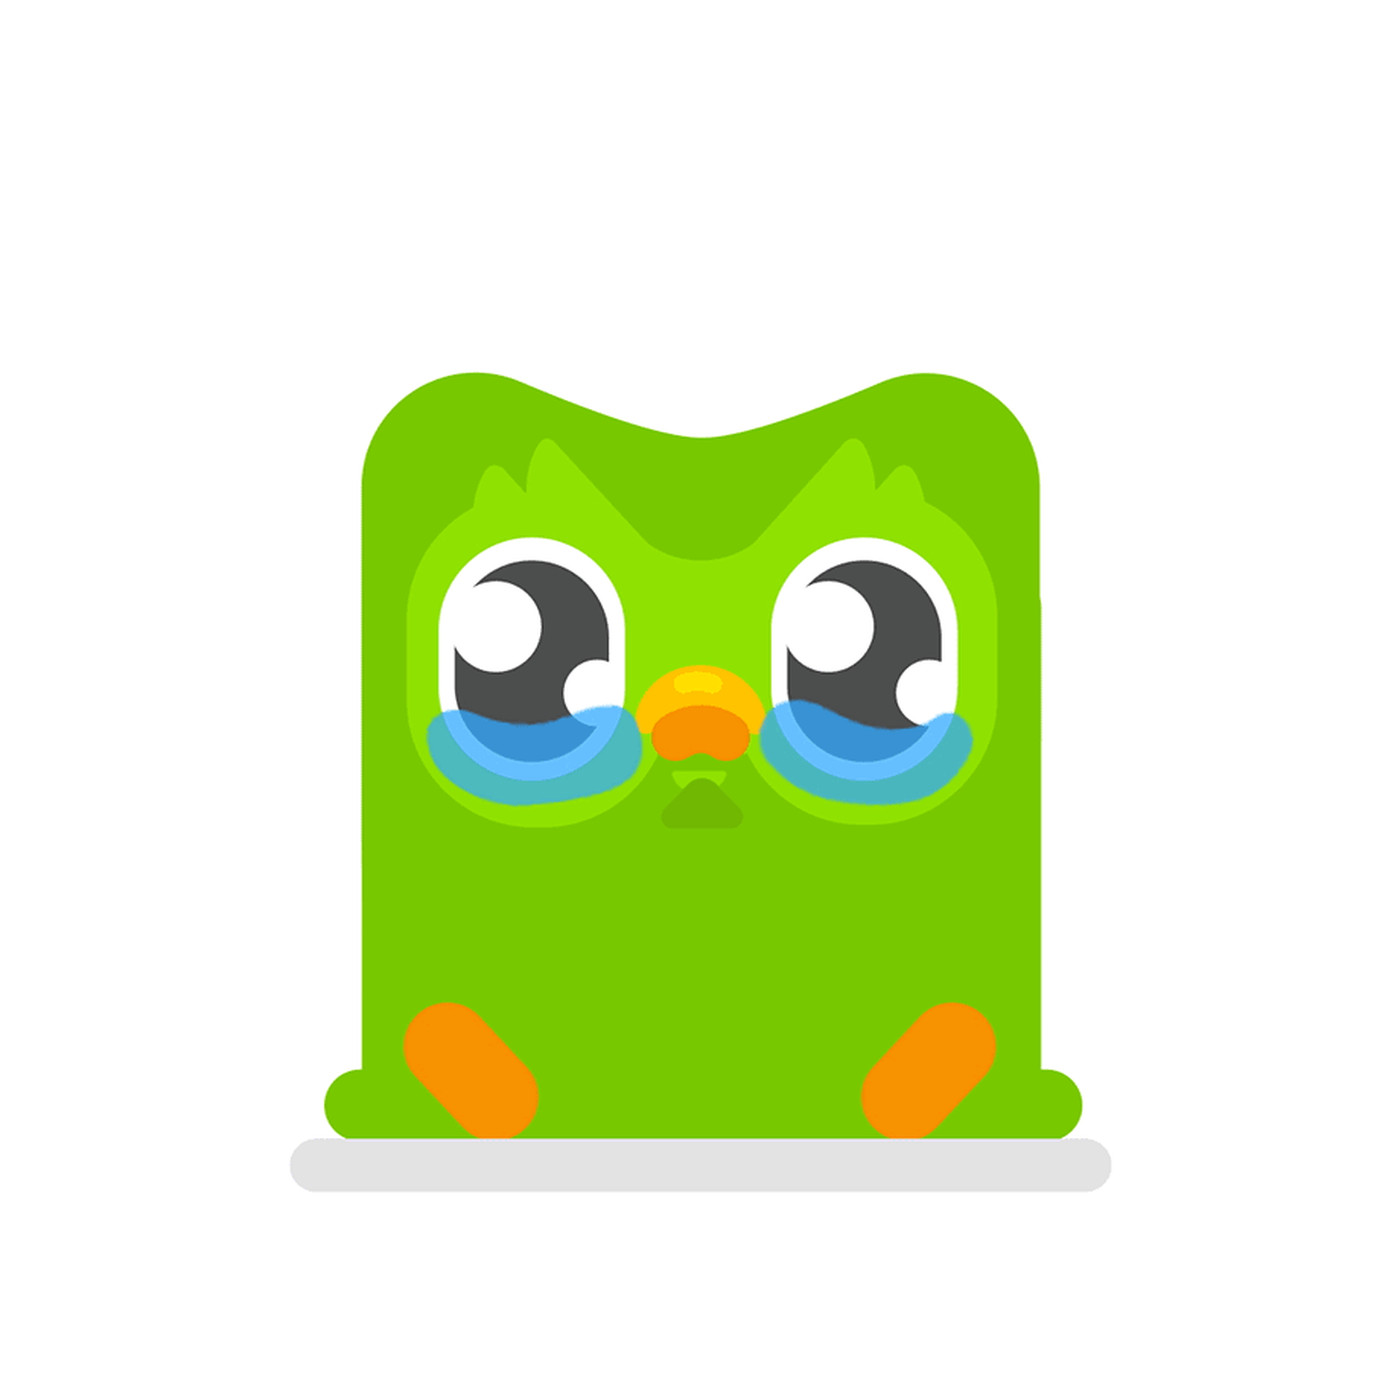 Clipart of owl saying i ll miss you transparent library Duolingo redesigned its owl to guilt-trip you even harder - The Verge transparent library